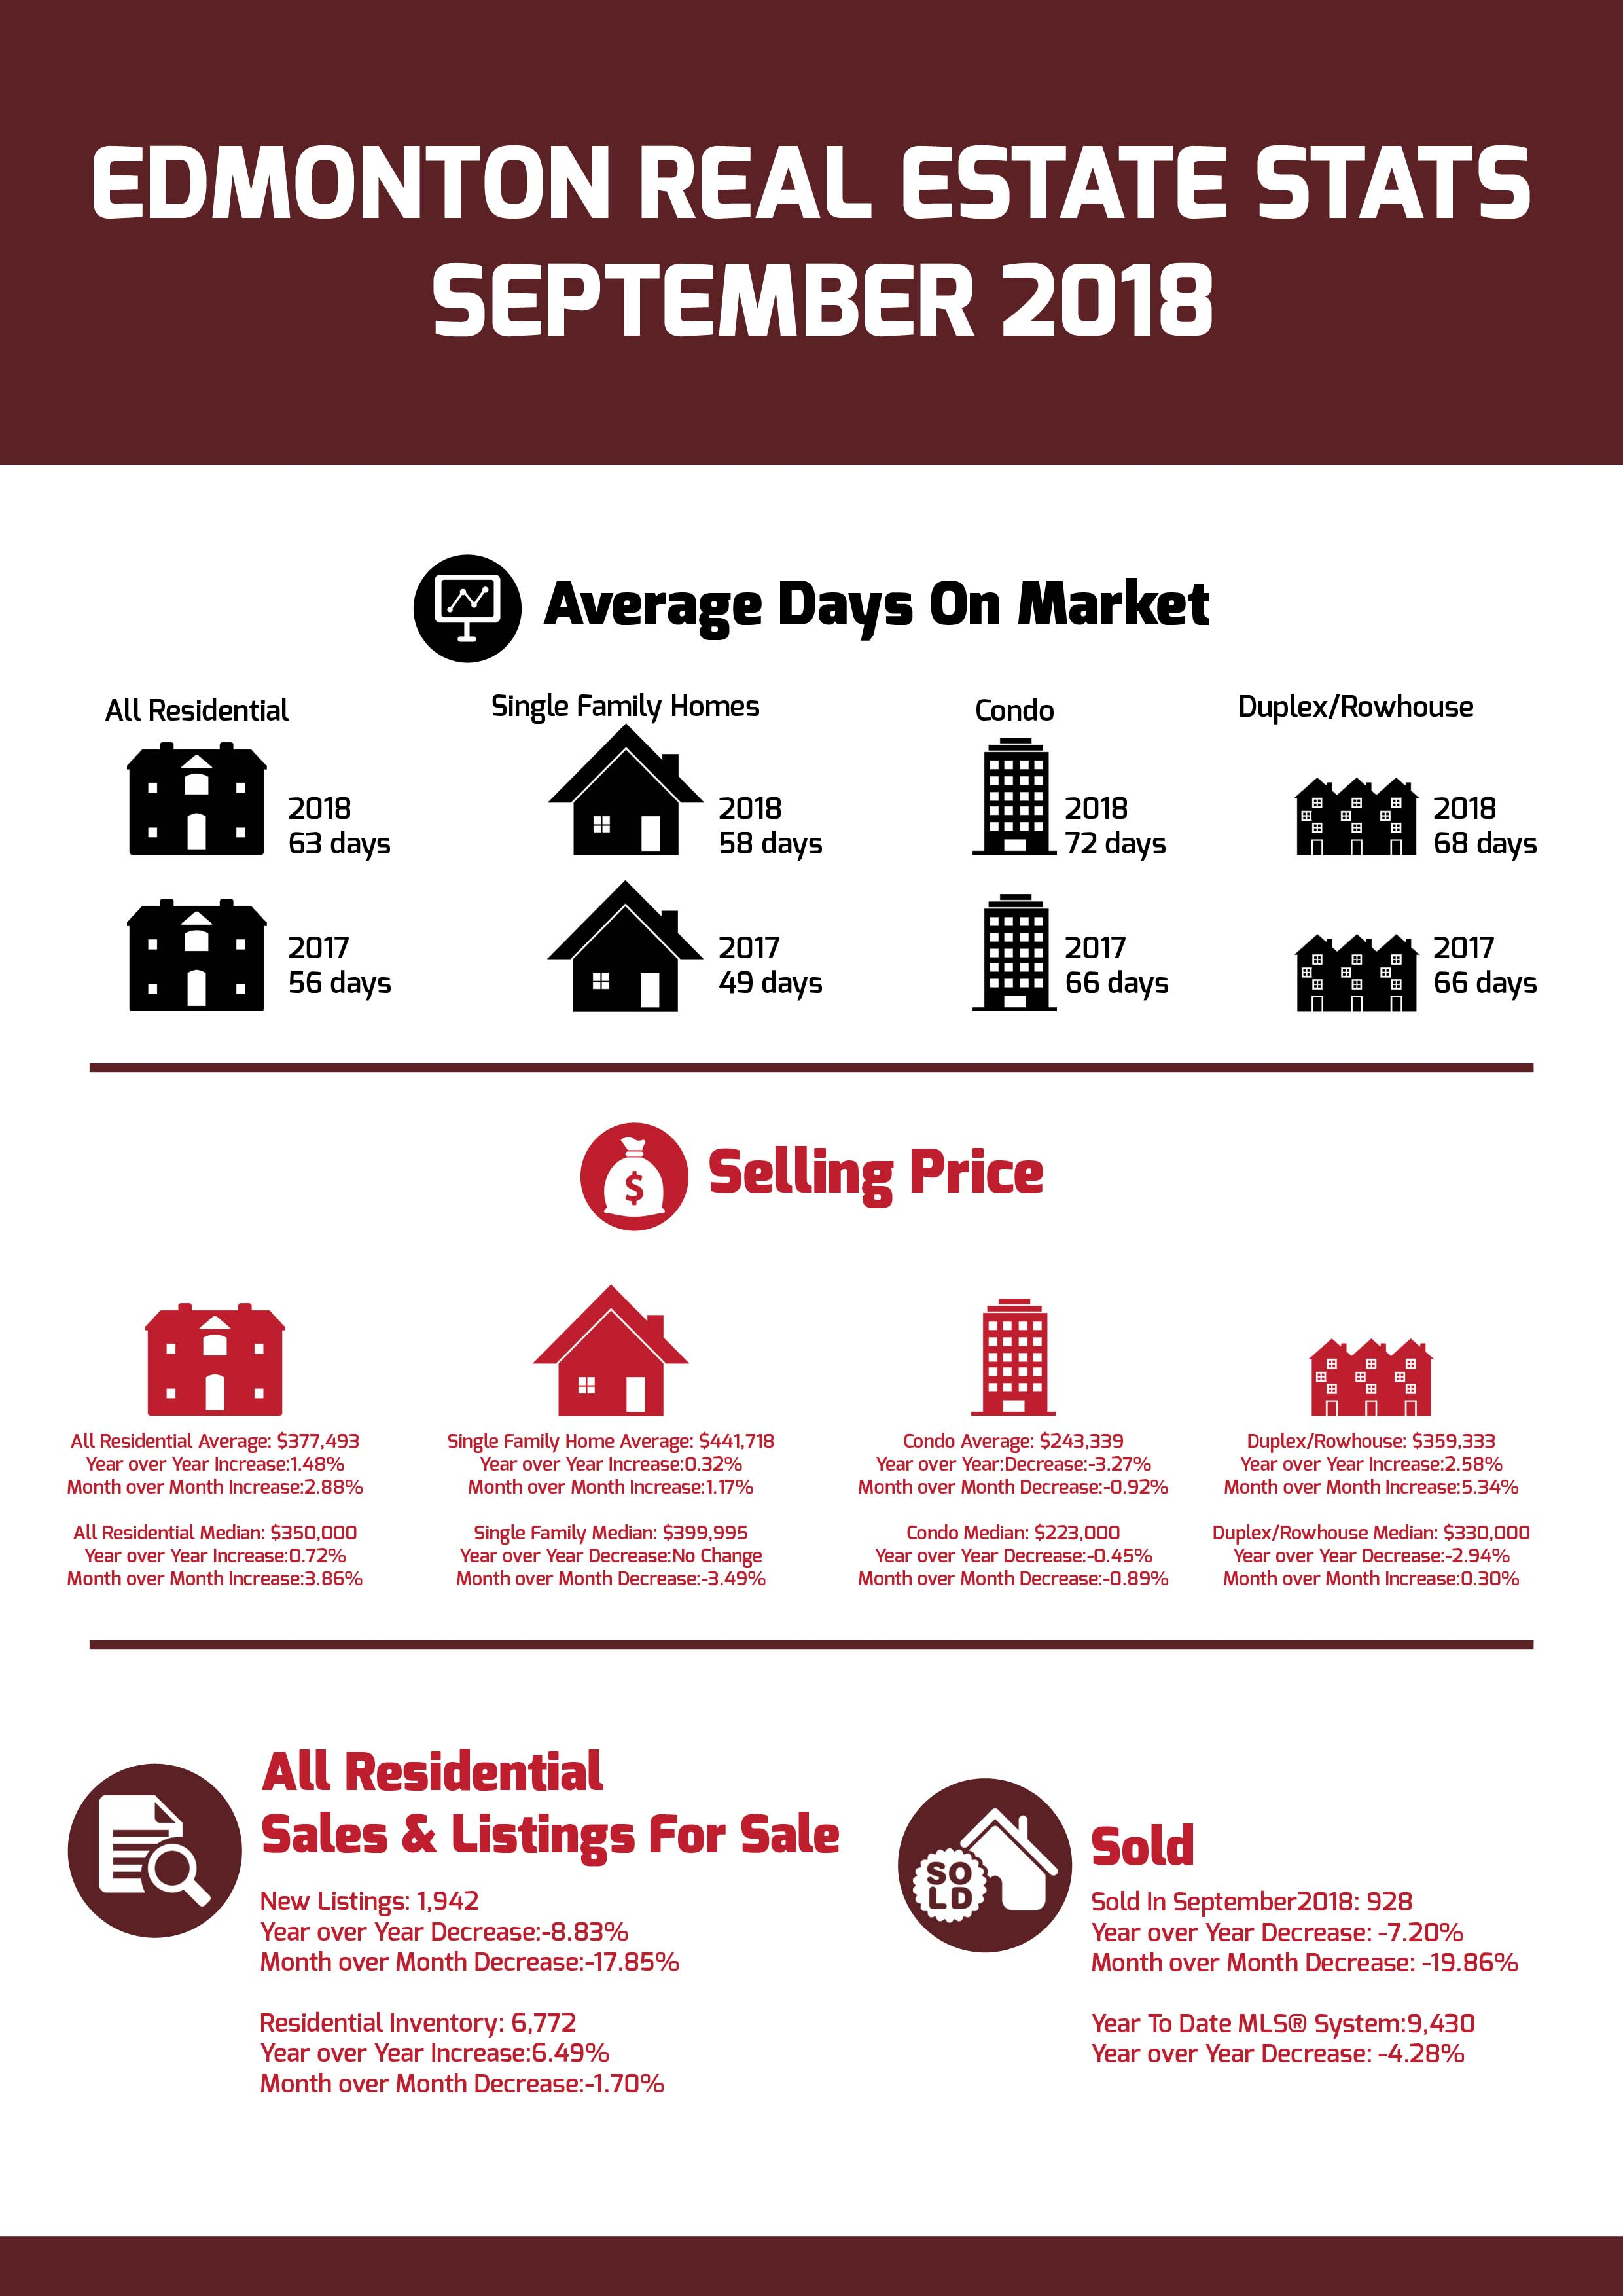 Edmonton Real Estate Stats September 2018